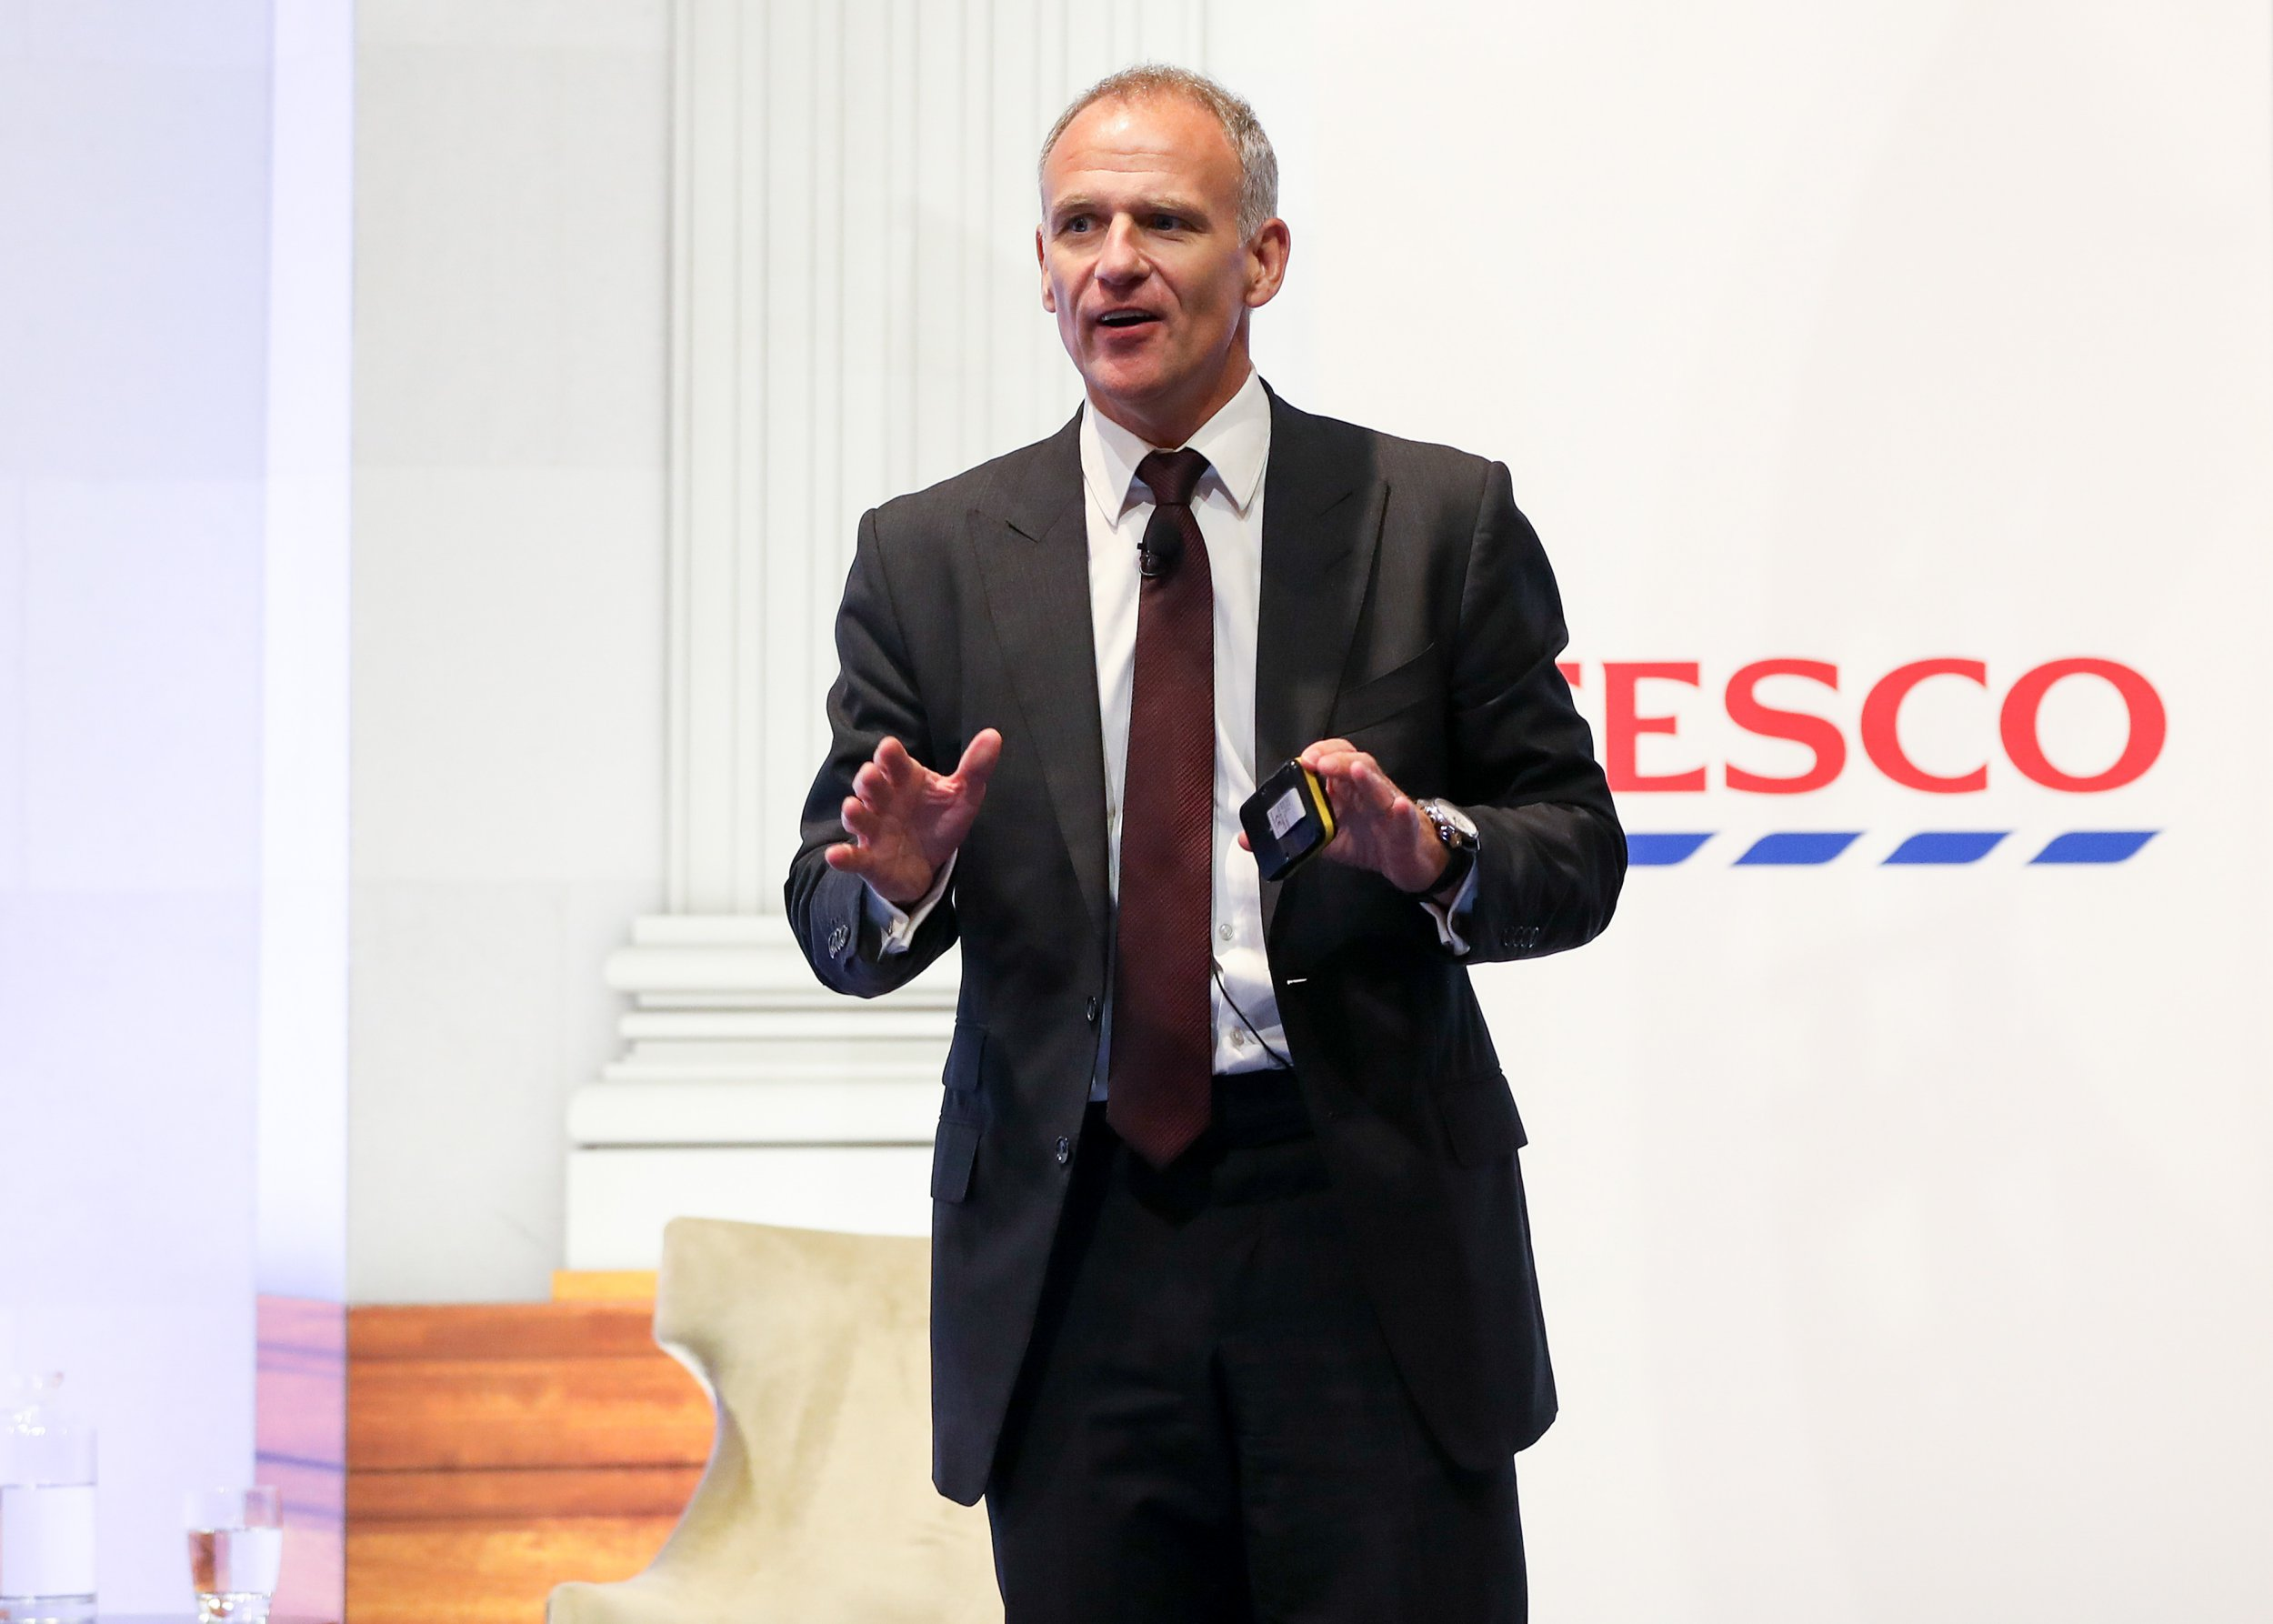 Dave Lewis, chief executive officer of Tesco Plc, gestures while speaking during a news conference in London, U.K., on Friday, Jan. 27, 2017. Tesco agreed to buy Booker Group Plc for about 3.7 billion pounds ($4.6 billion), pooling the U.K.s biggest supermarket chain with the No. 1 food wholesaler and gaining access to the fast-growing market to supply restaurants and hotels. Photographer: Simon Dawson/Bloomberg via Getty Images